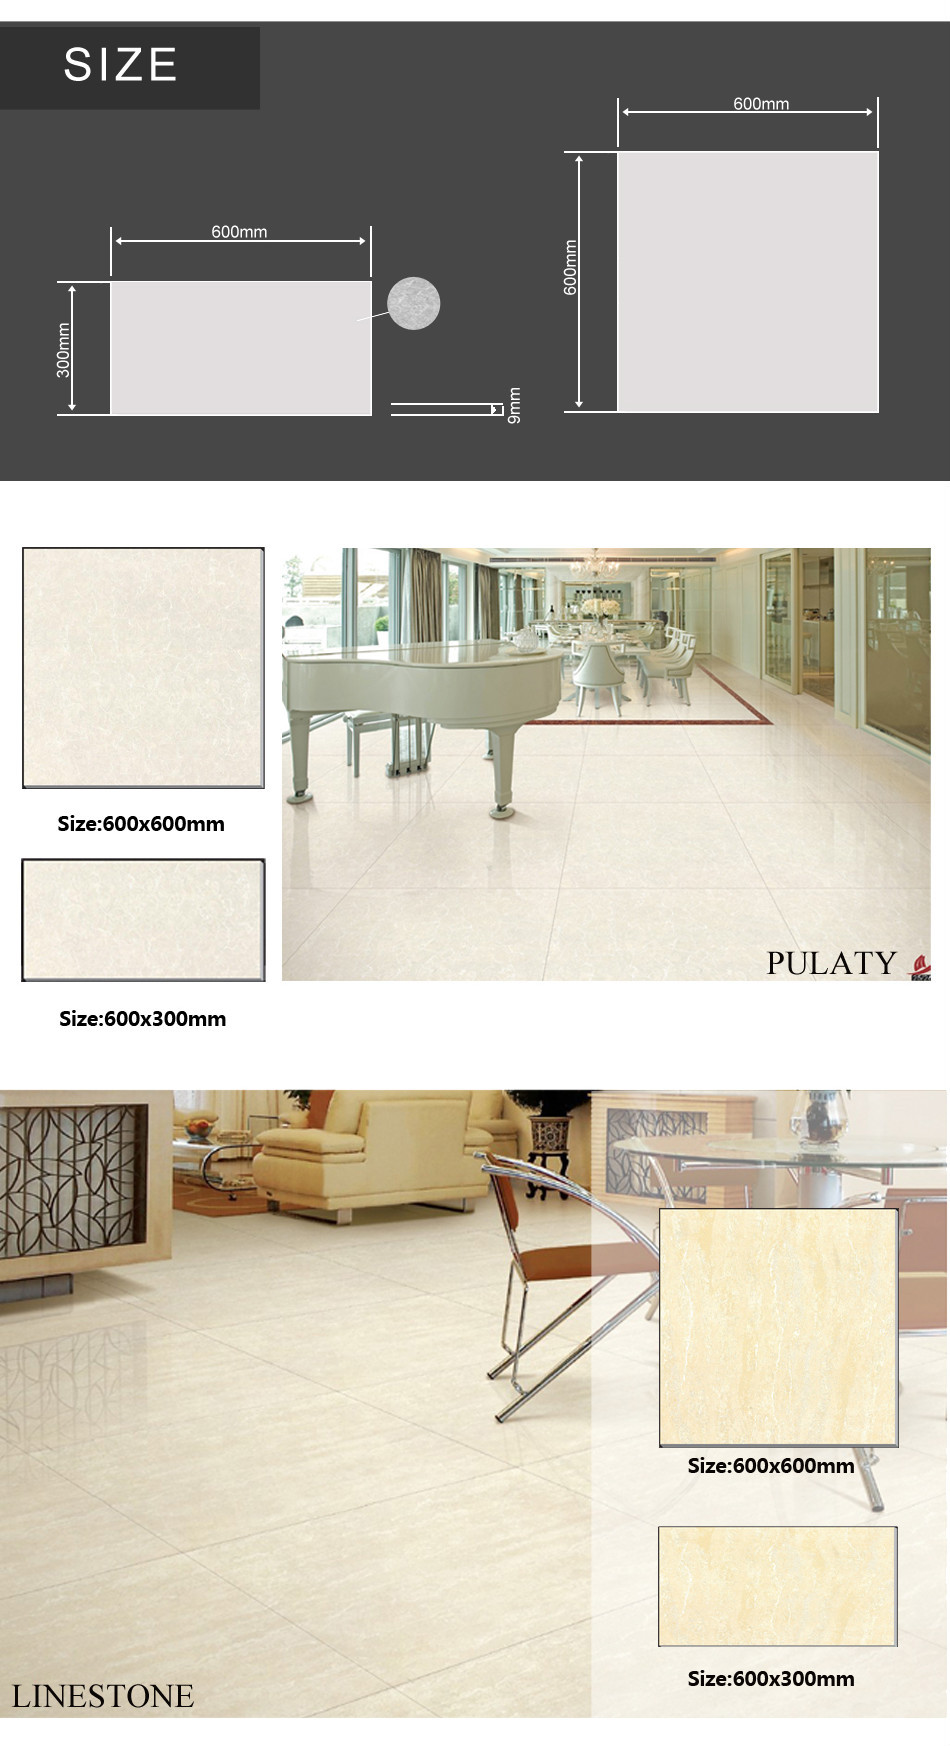 Modern design cheap china tiles noble house flooring tiles price modern design cheap china tiles noble house flooring tiles price in usd499 sqm tulip dailygadgetfo Images